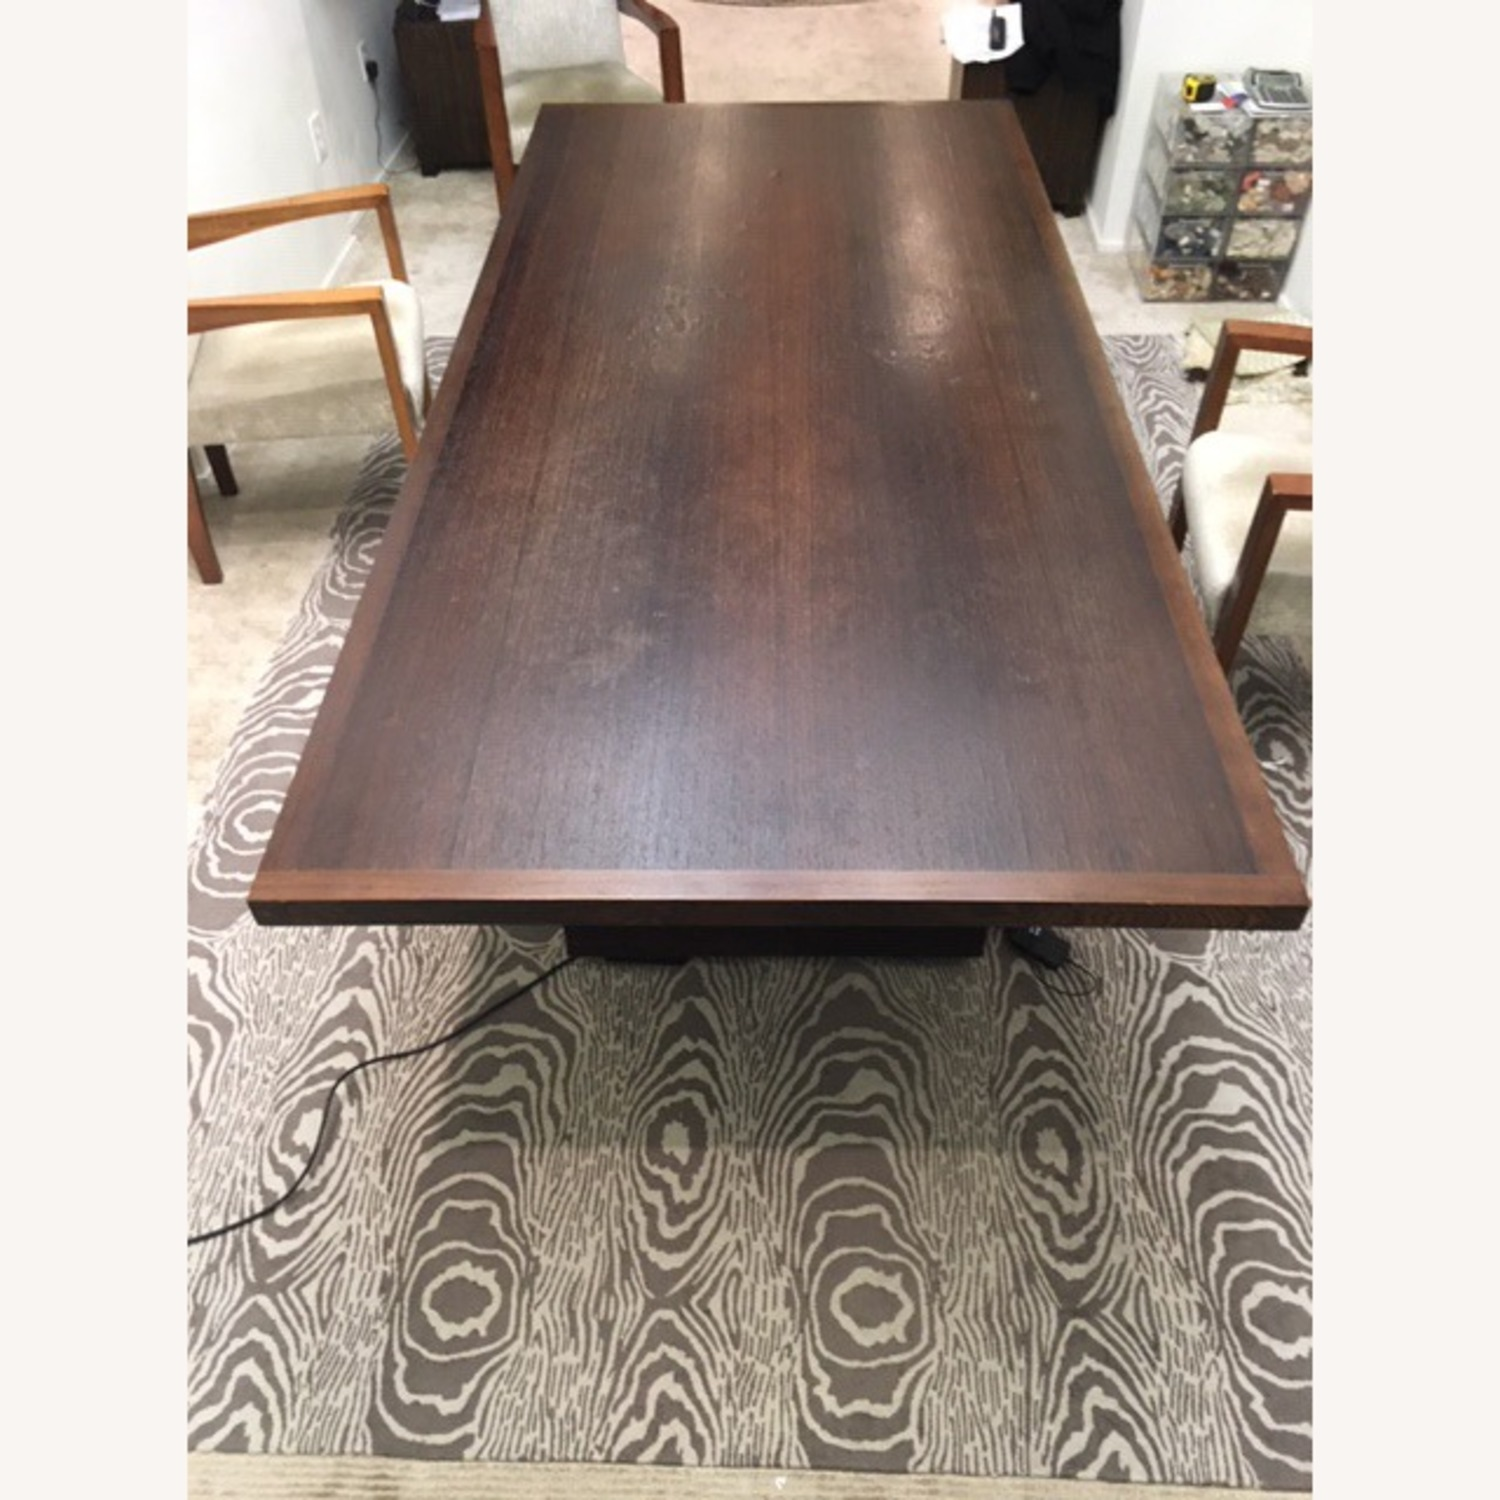 B&B Italia Large Wenge Veneer Dining Table - image-1